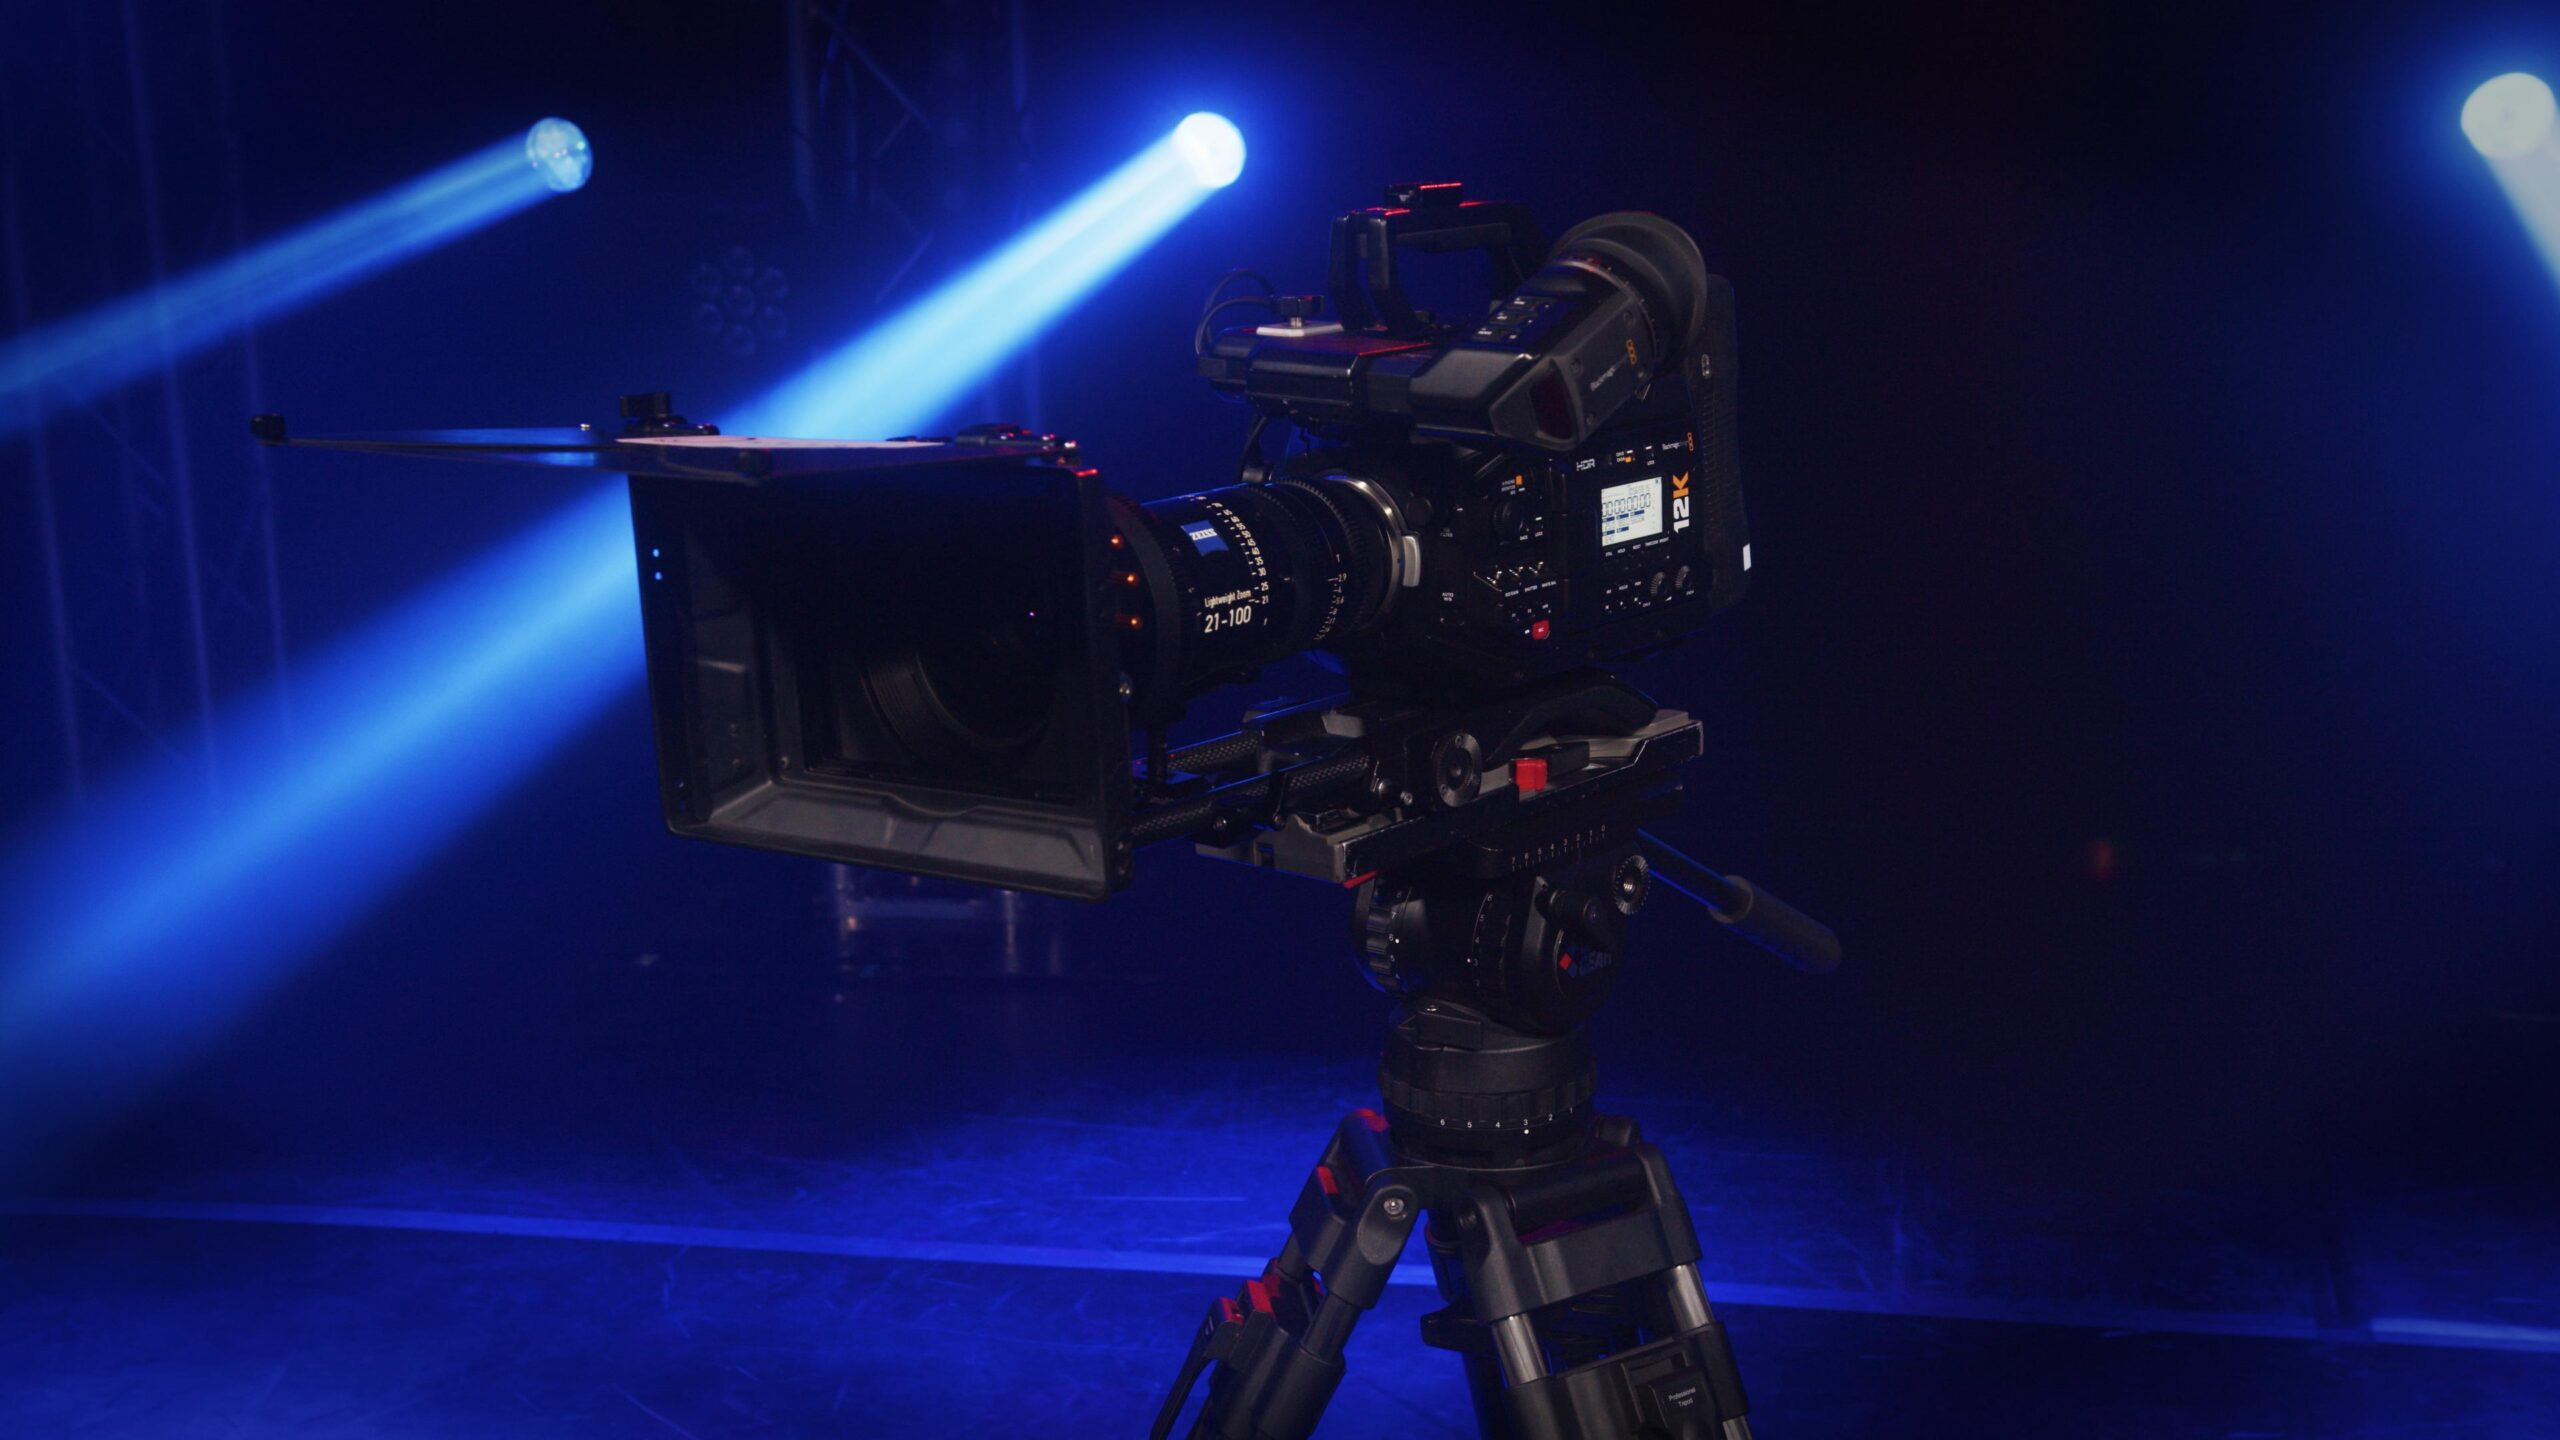 Introducing our world's first 12K Cinema Camera